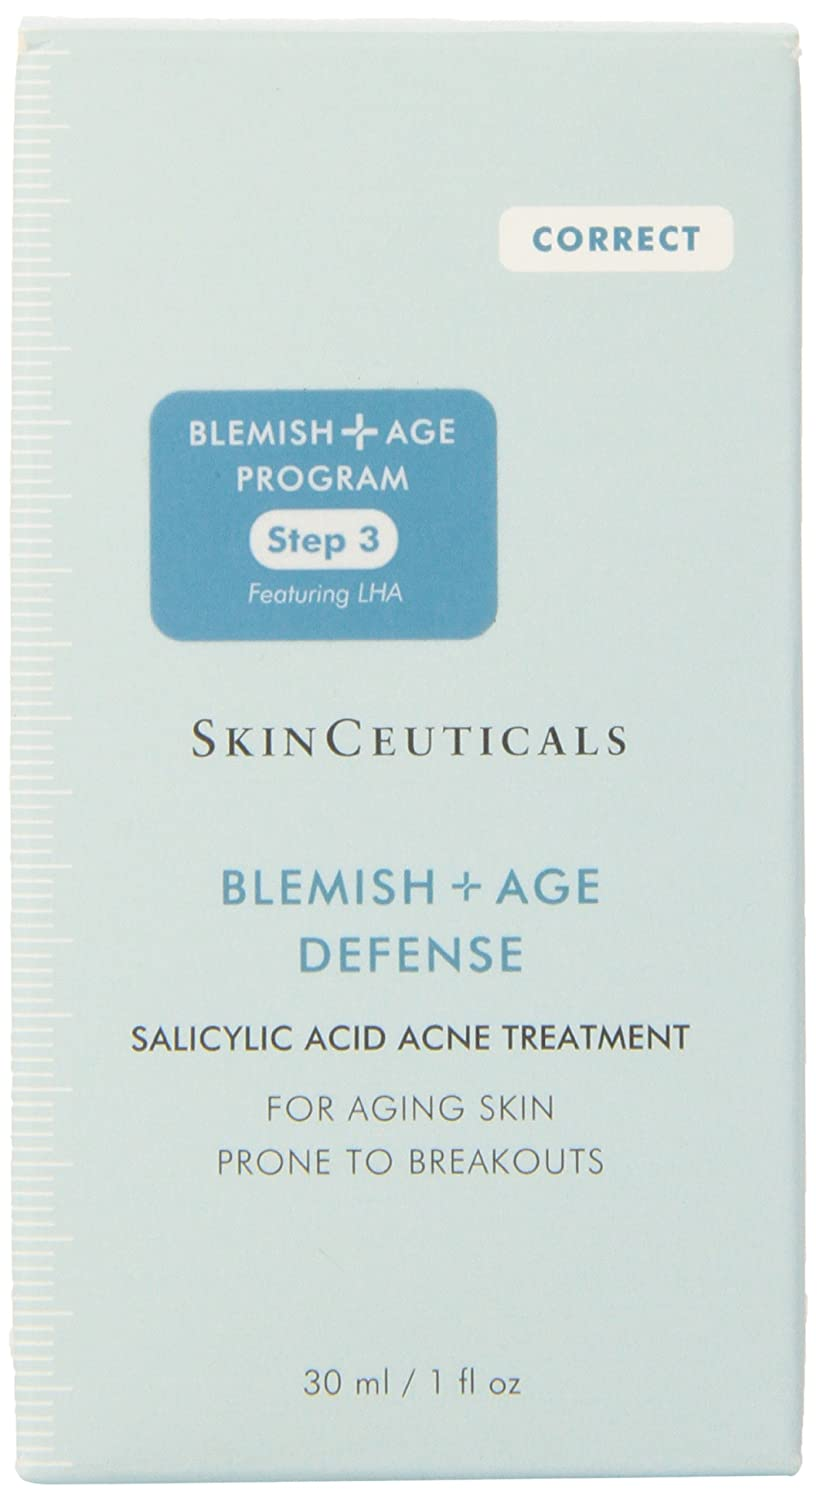 Skinceuticals Blemish plus Age Defense Acne Treatment, 1 Fluid Ounce S0422701